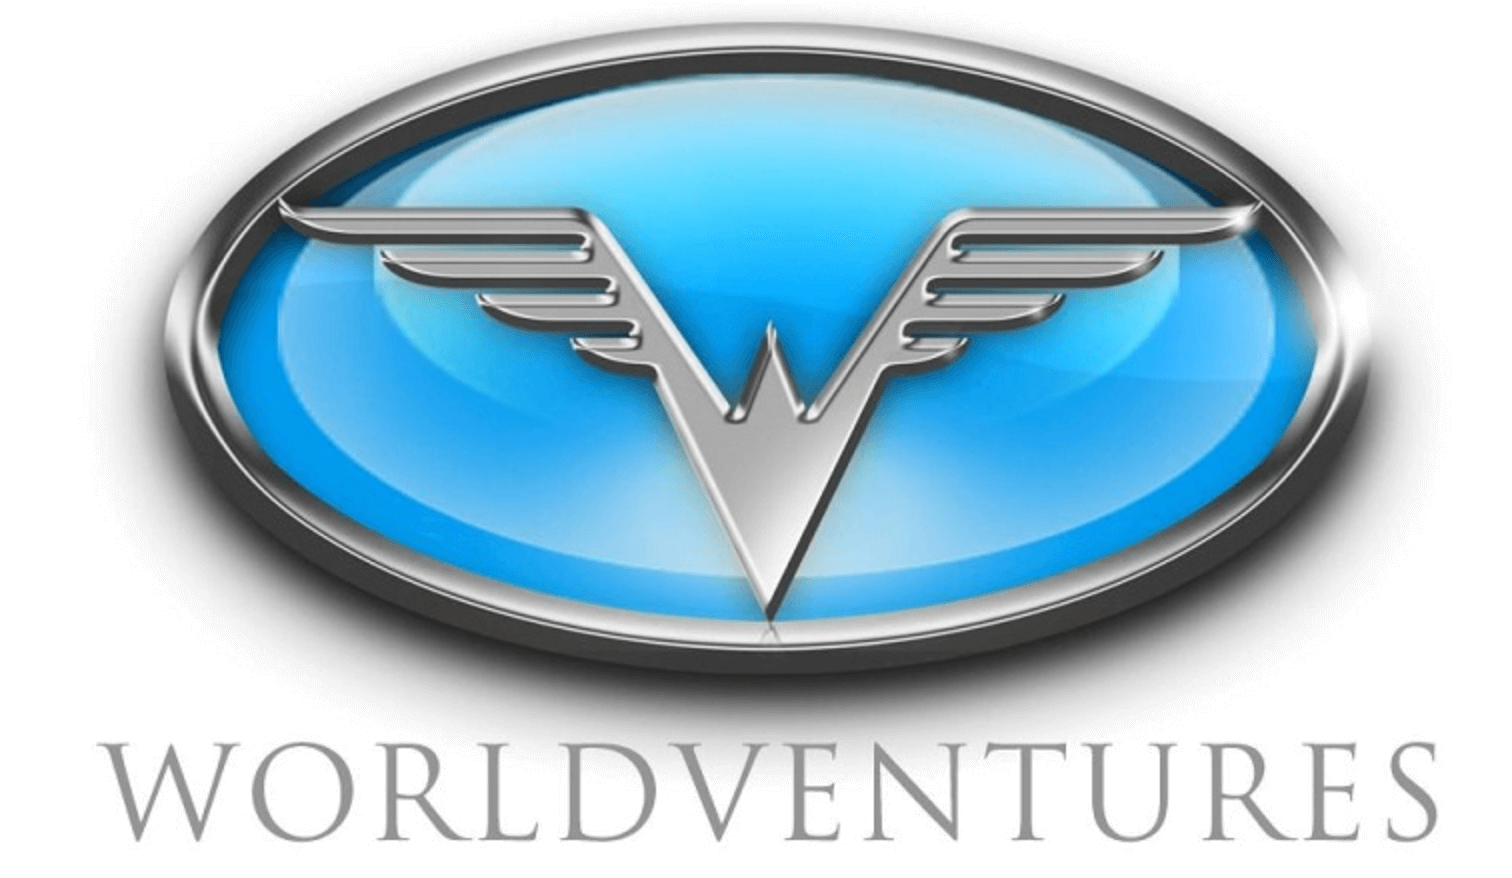 World Ventures scam